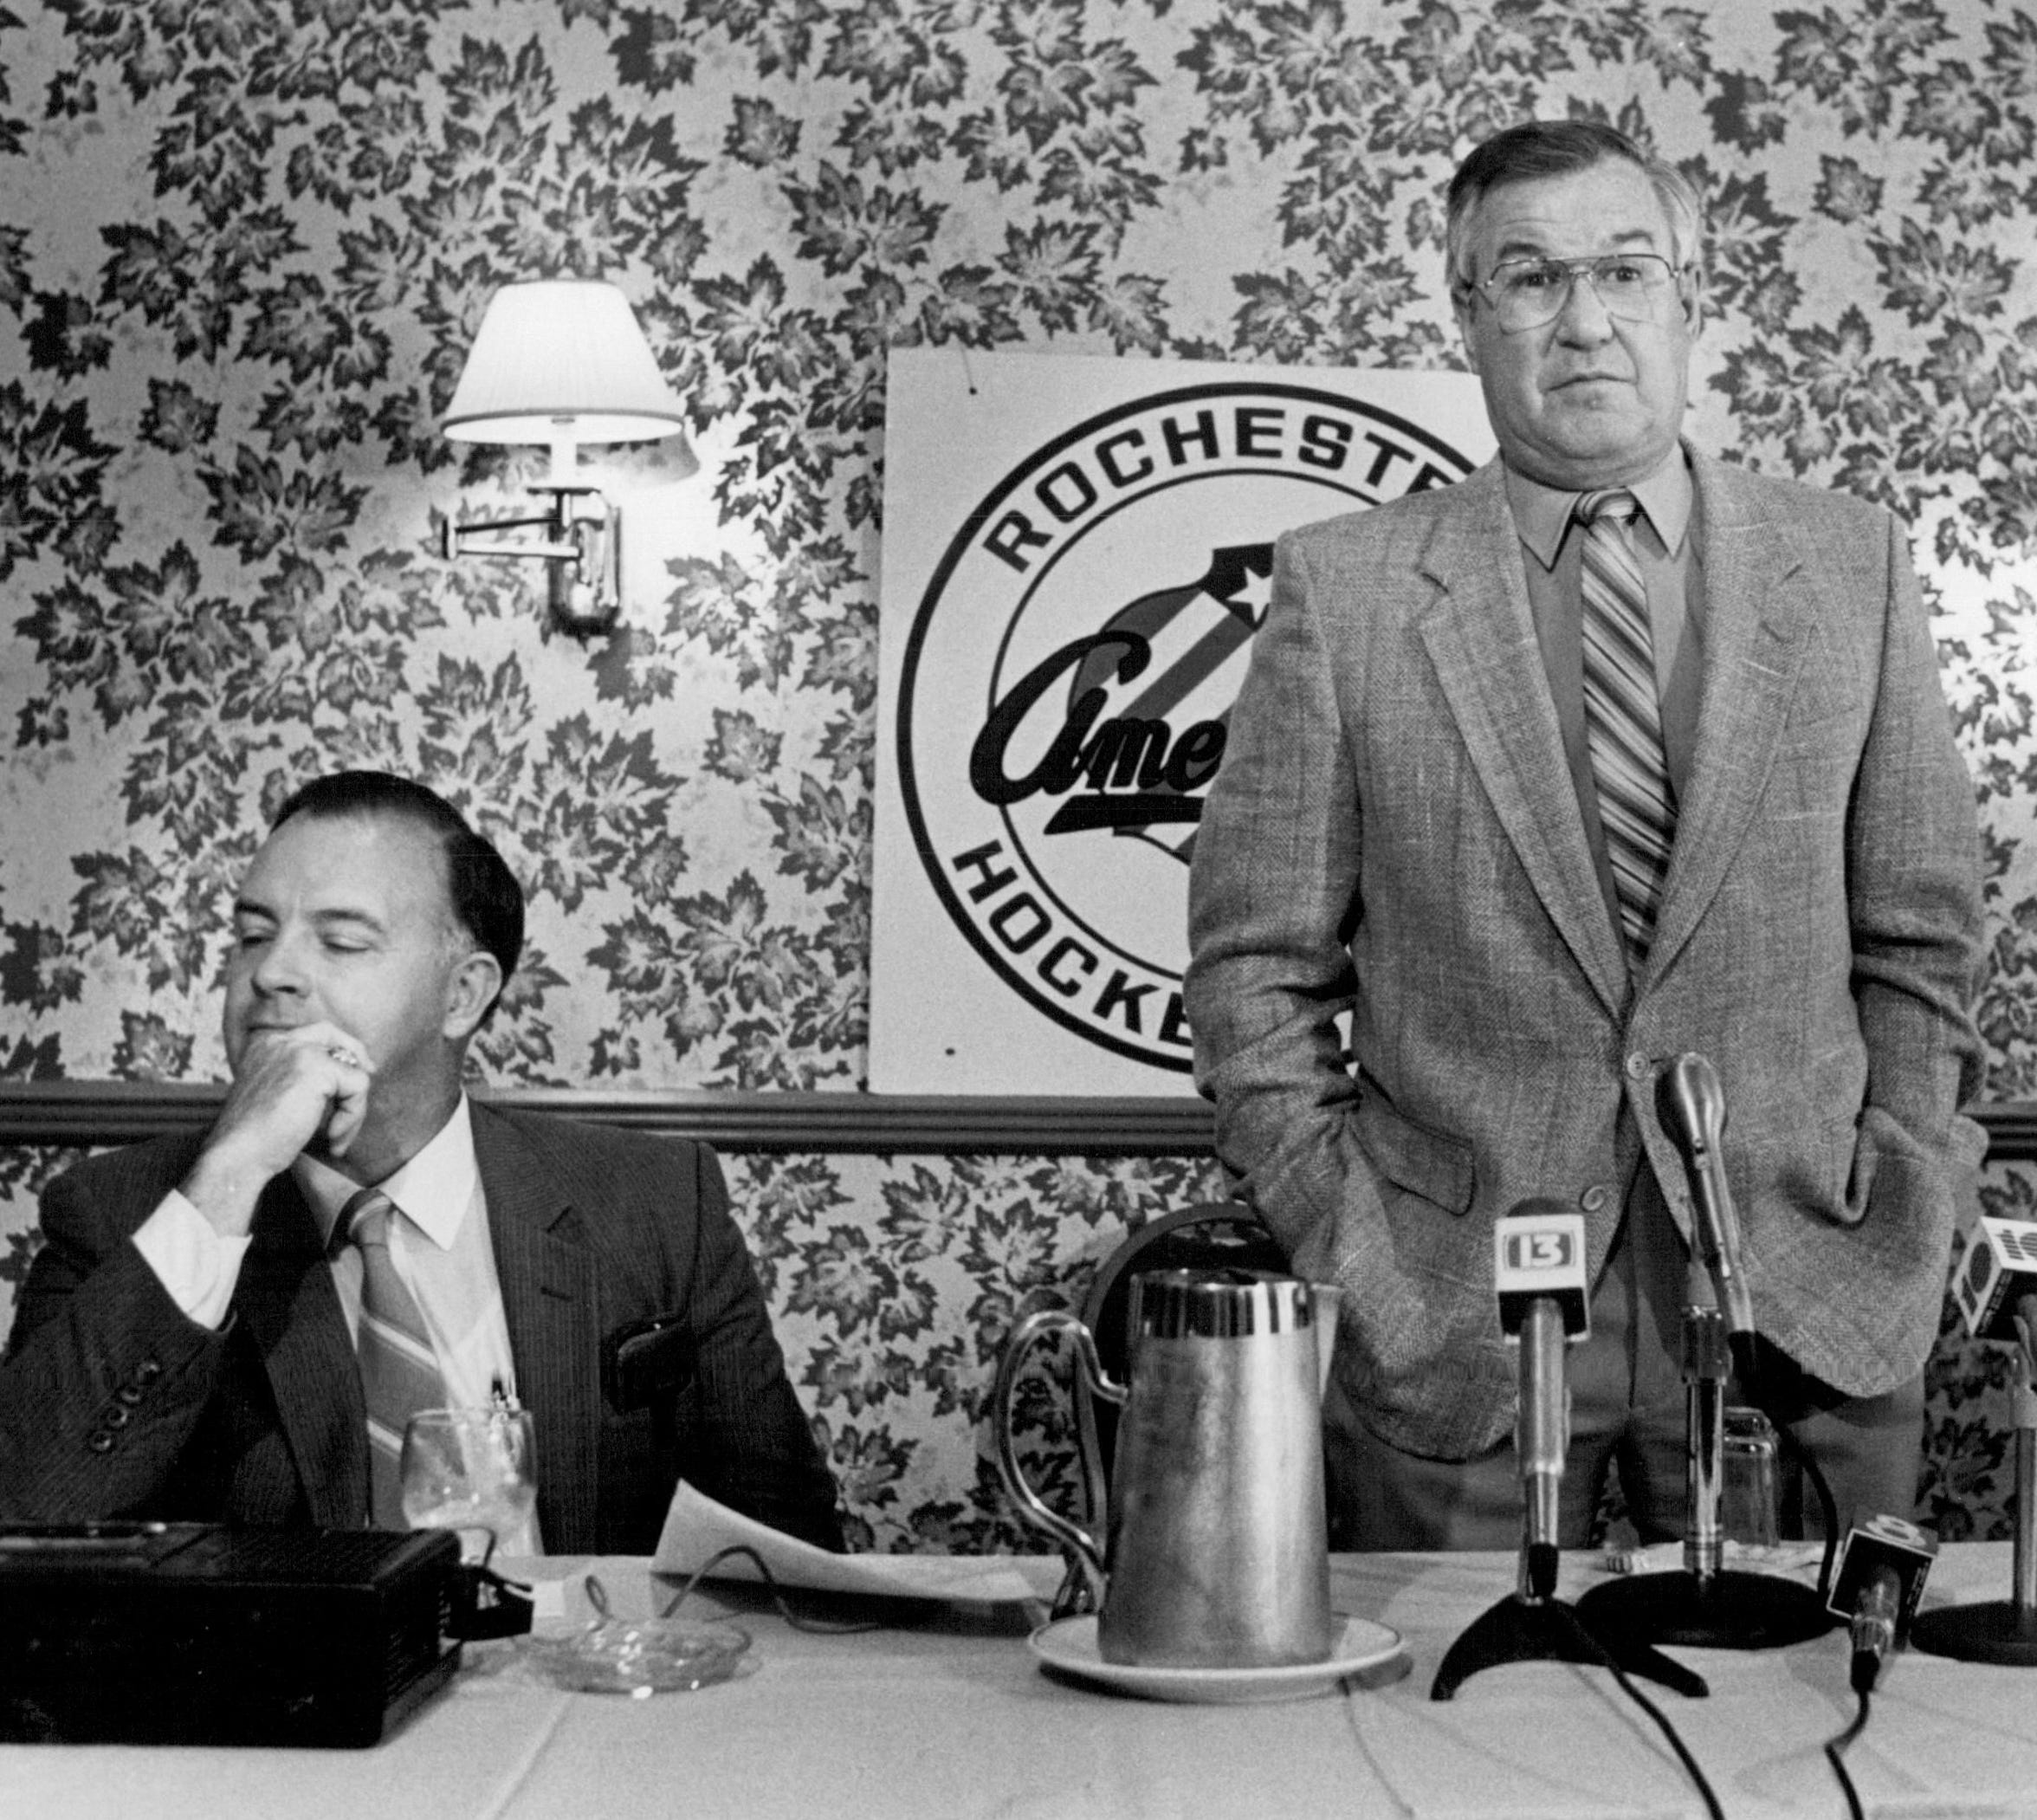 Buffalo Sabres general manager Scotty Bowman, left, with Joe Crozier on Sept. 17, 1984, the day Crozer was named the associate coach of the Sabres.